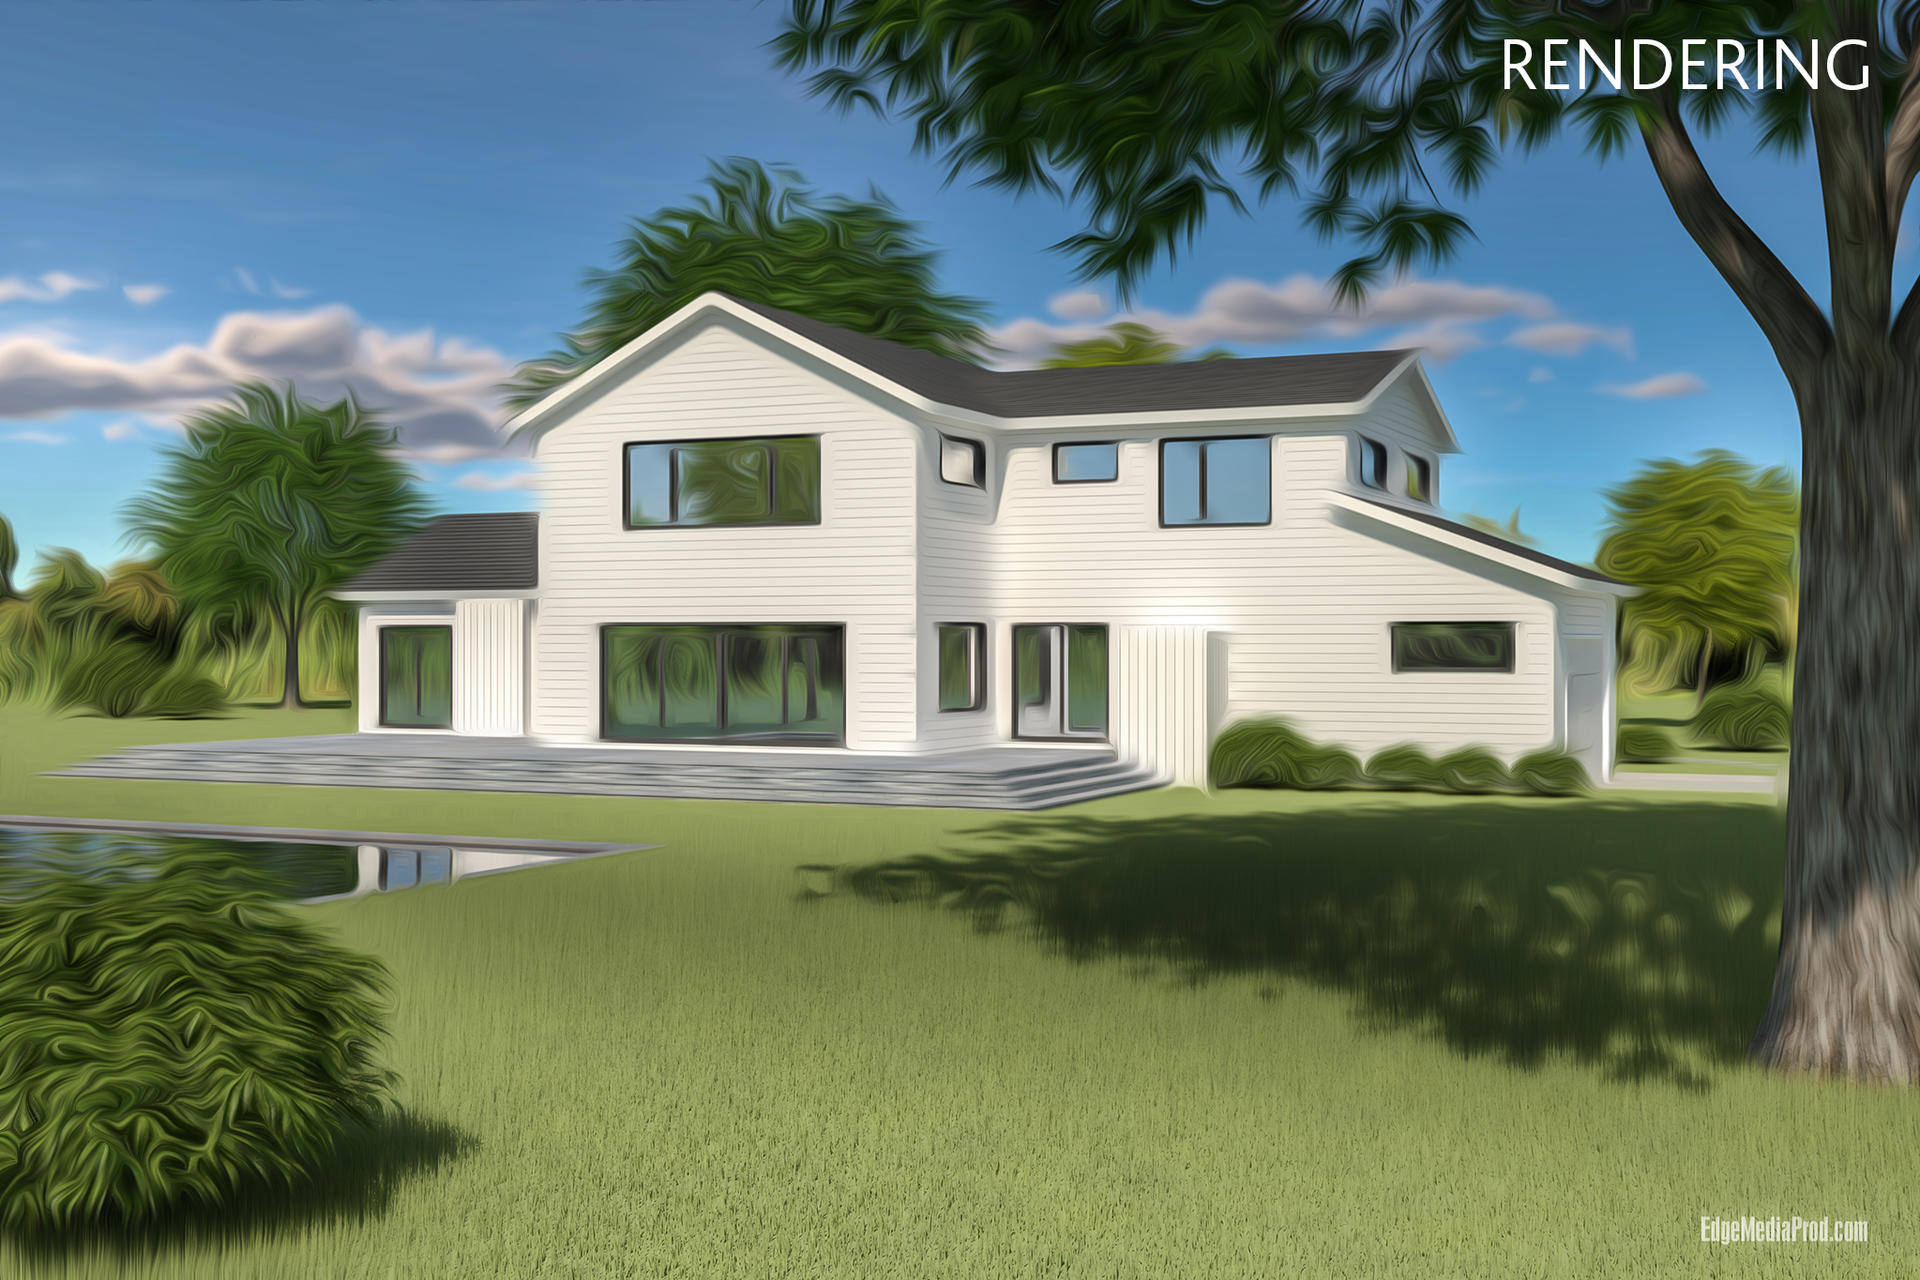 Single Family Home for Sale at Sag Harbor Village New Construction 41 Montauk Avenue, Sag Harbor, New York